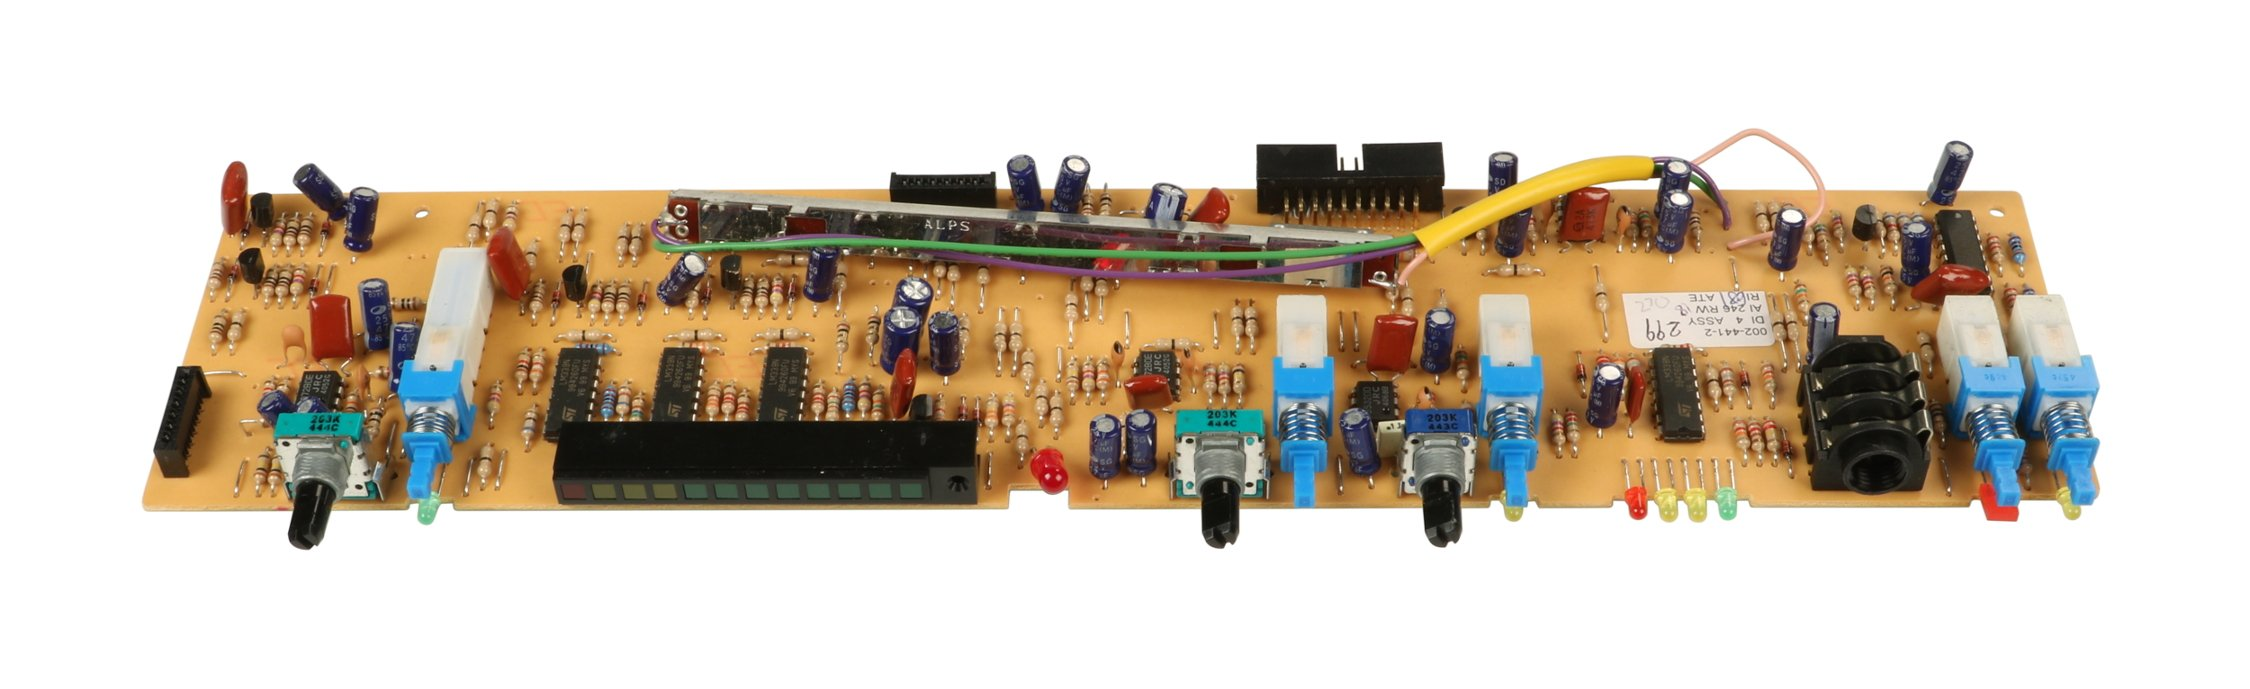 Right Master PCB for GL2200